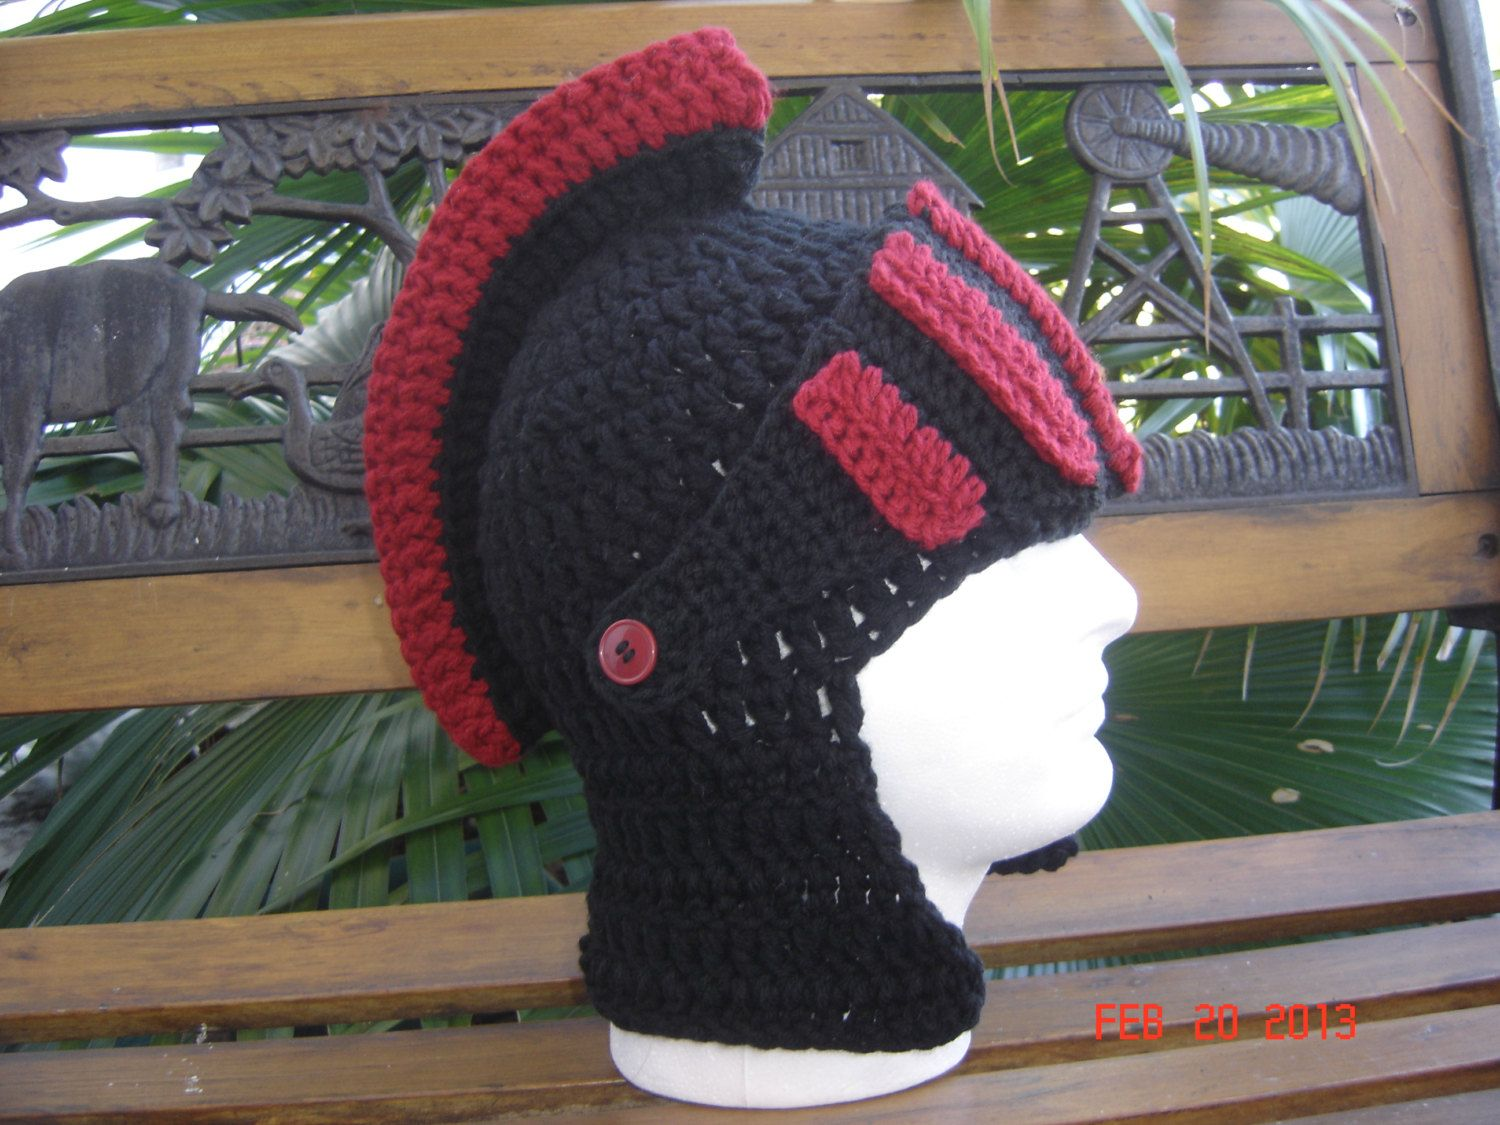 BLACK and RED Medevil Knight   Gladiator   Spartan beanie Winter hat face  warmer skiing snowboarding cap crochet helmet.  29.99 3470b8f5159